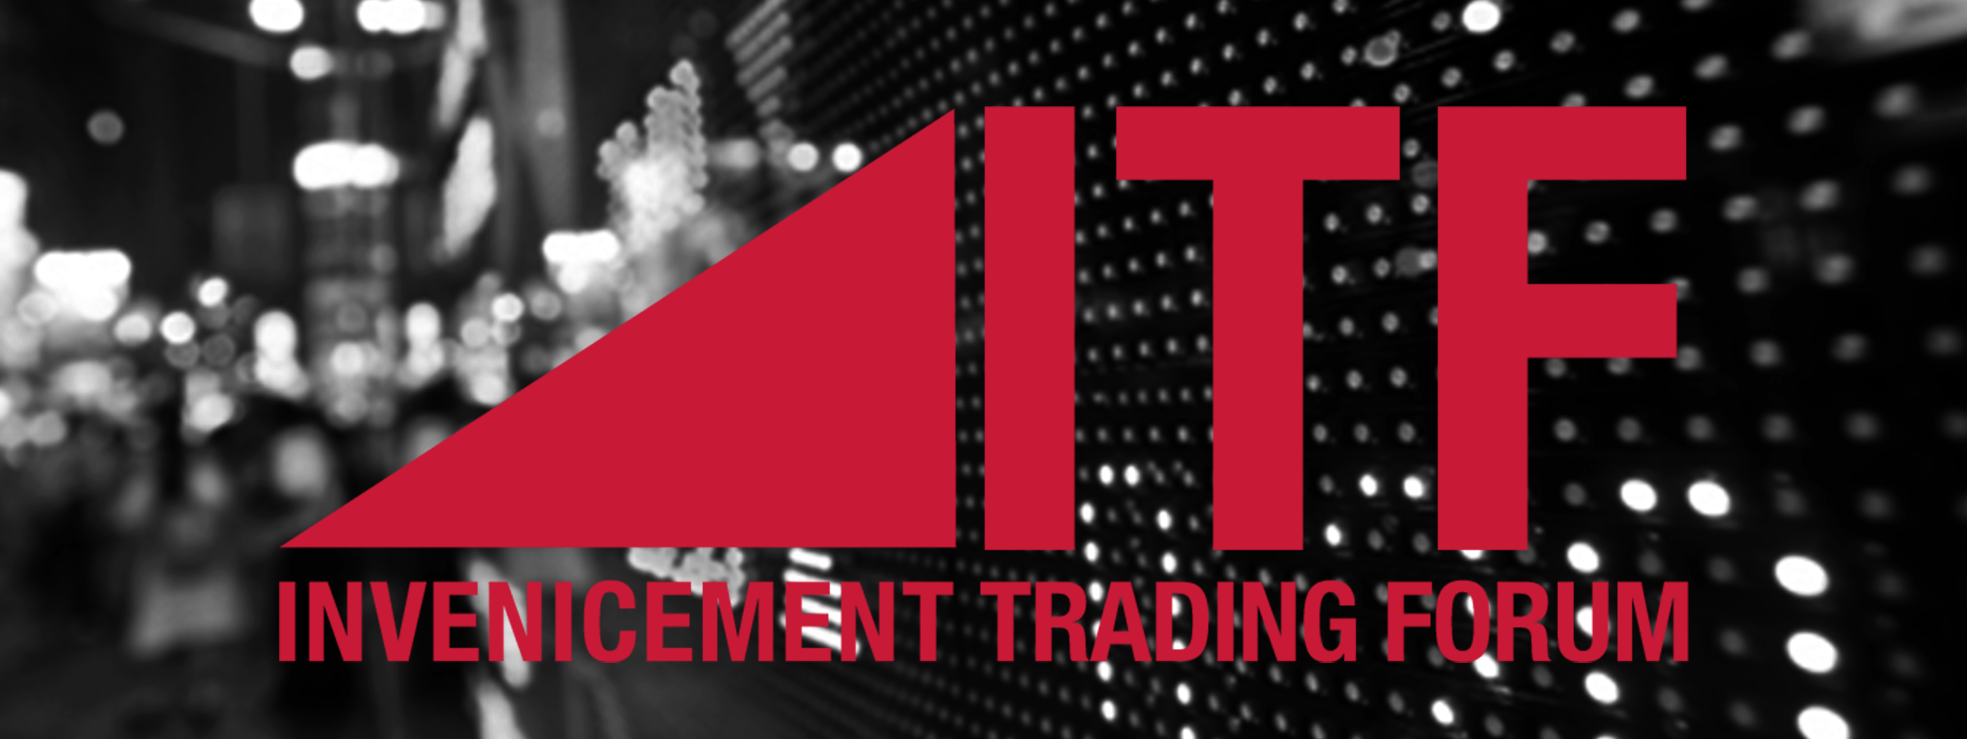 Invenicement Trading Forum